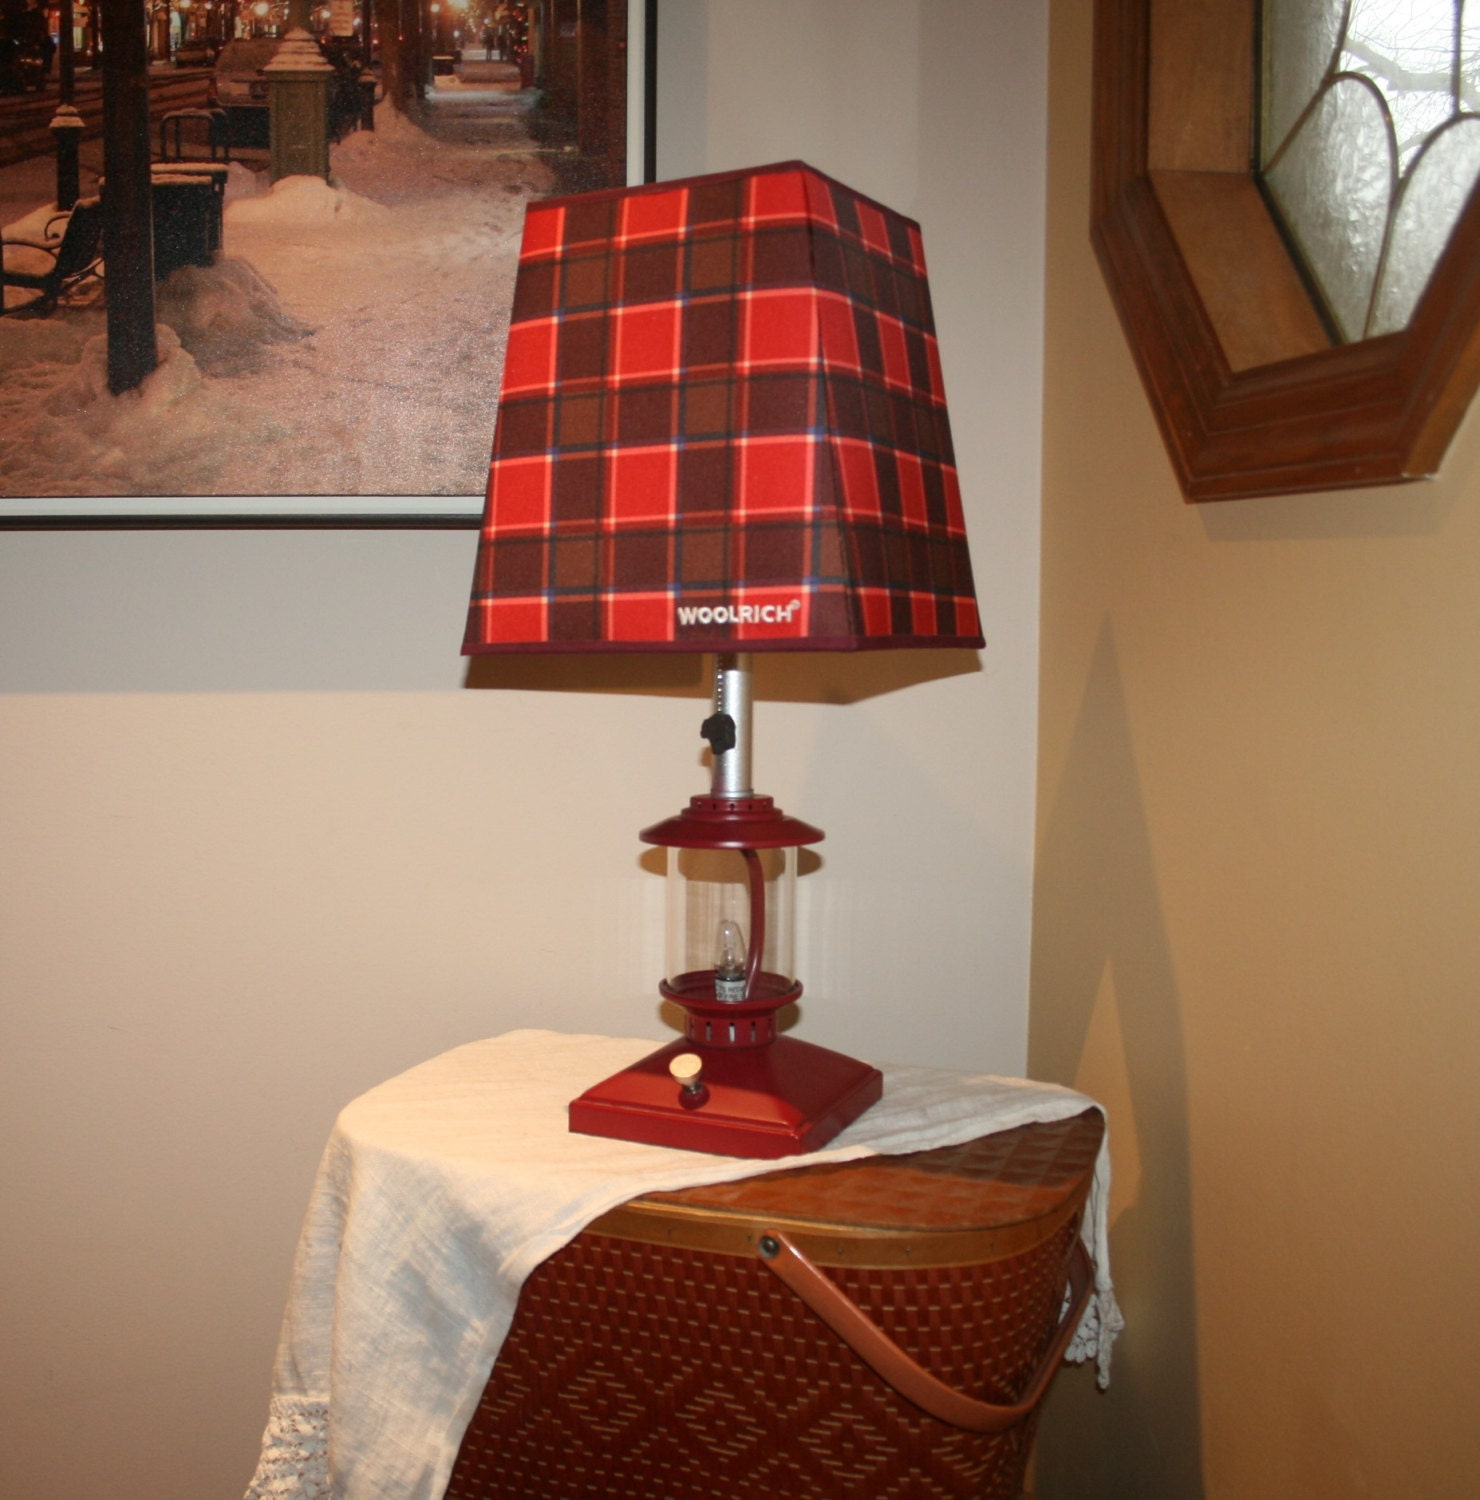 discontinued woolrich big bear campground lamp red lantern